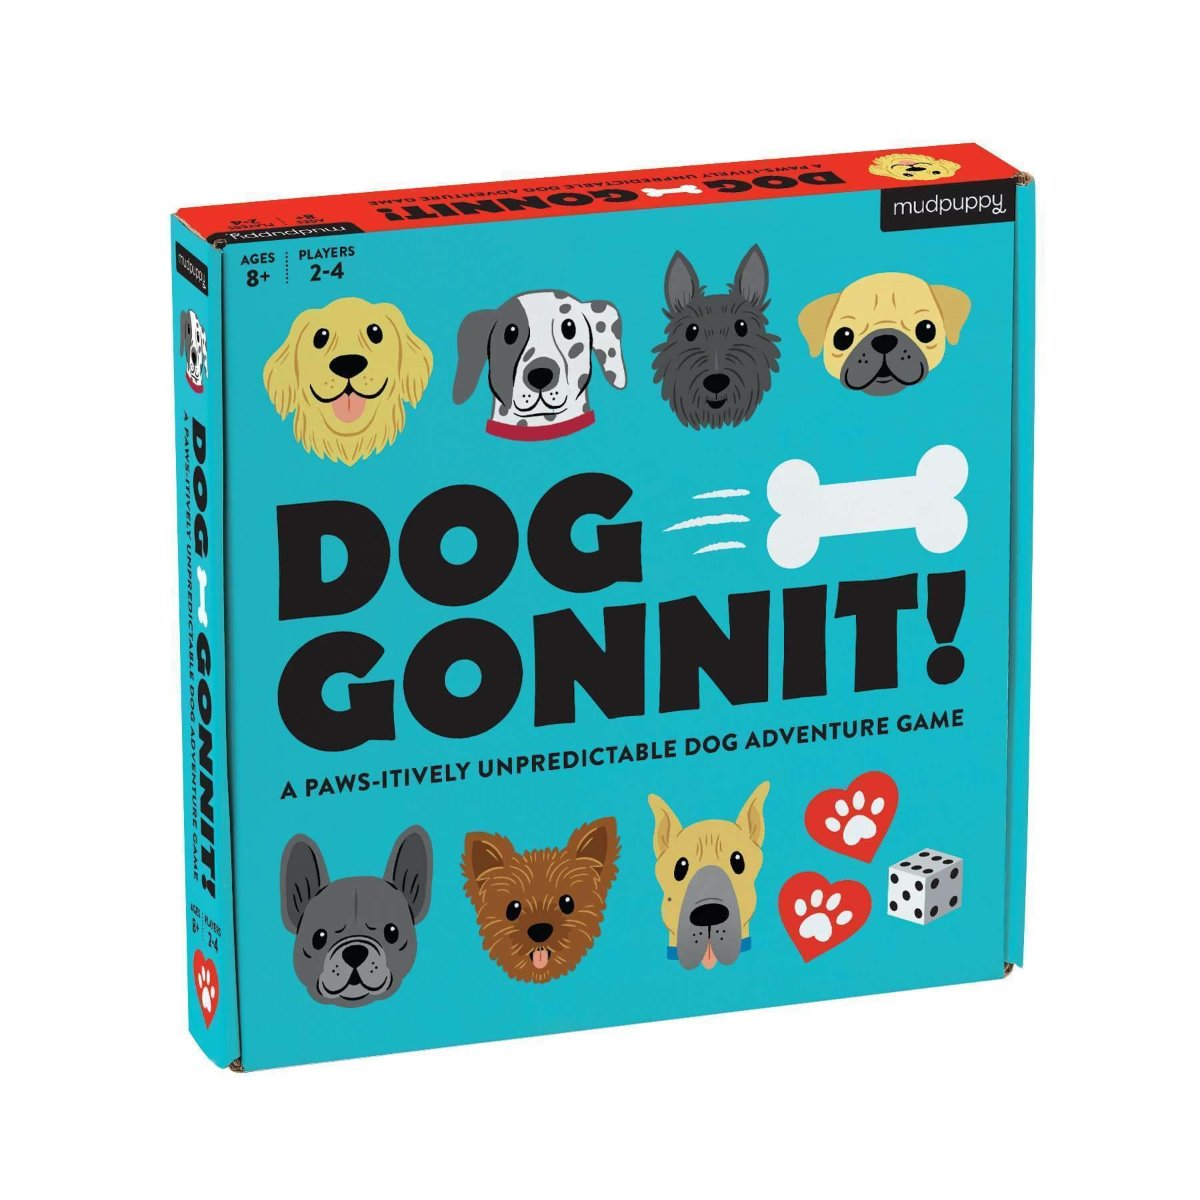 Mudpuppy Dog Gonnit! Board Game at Little Sprout